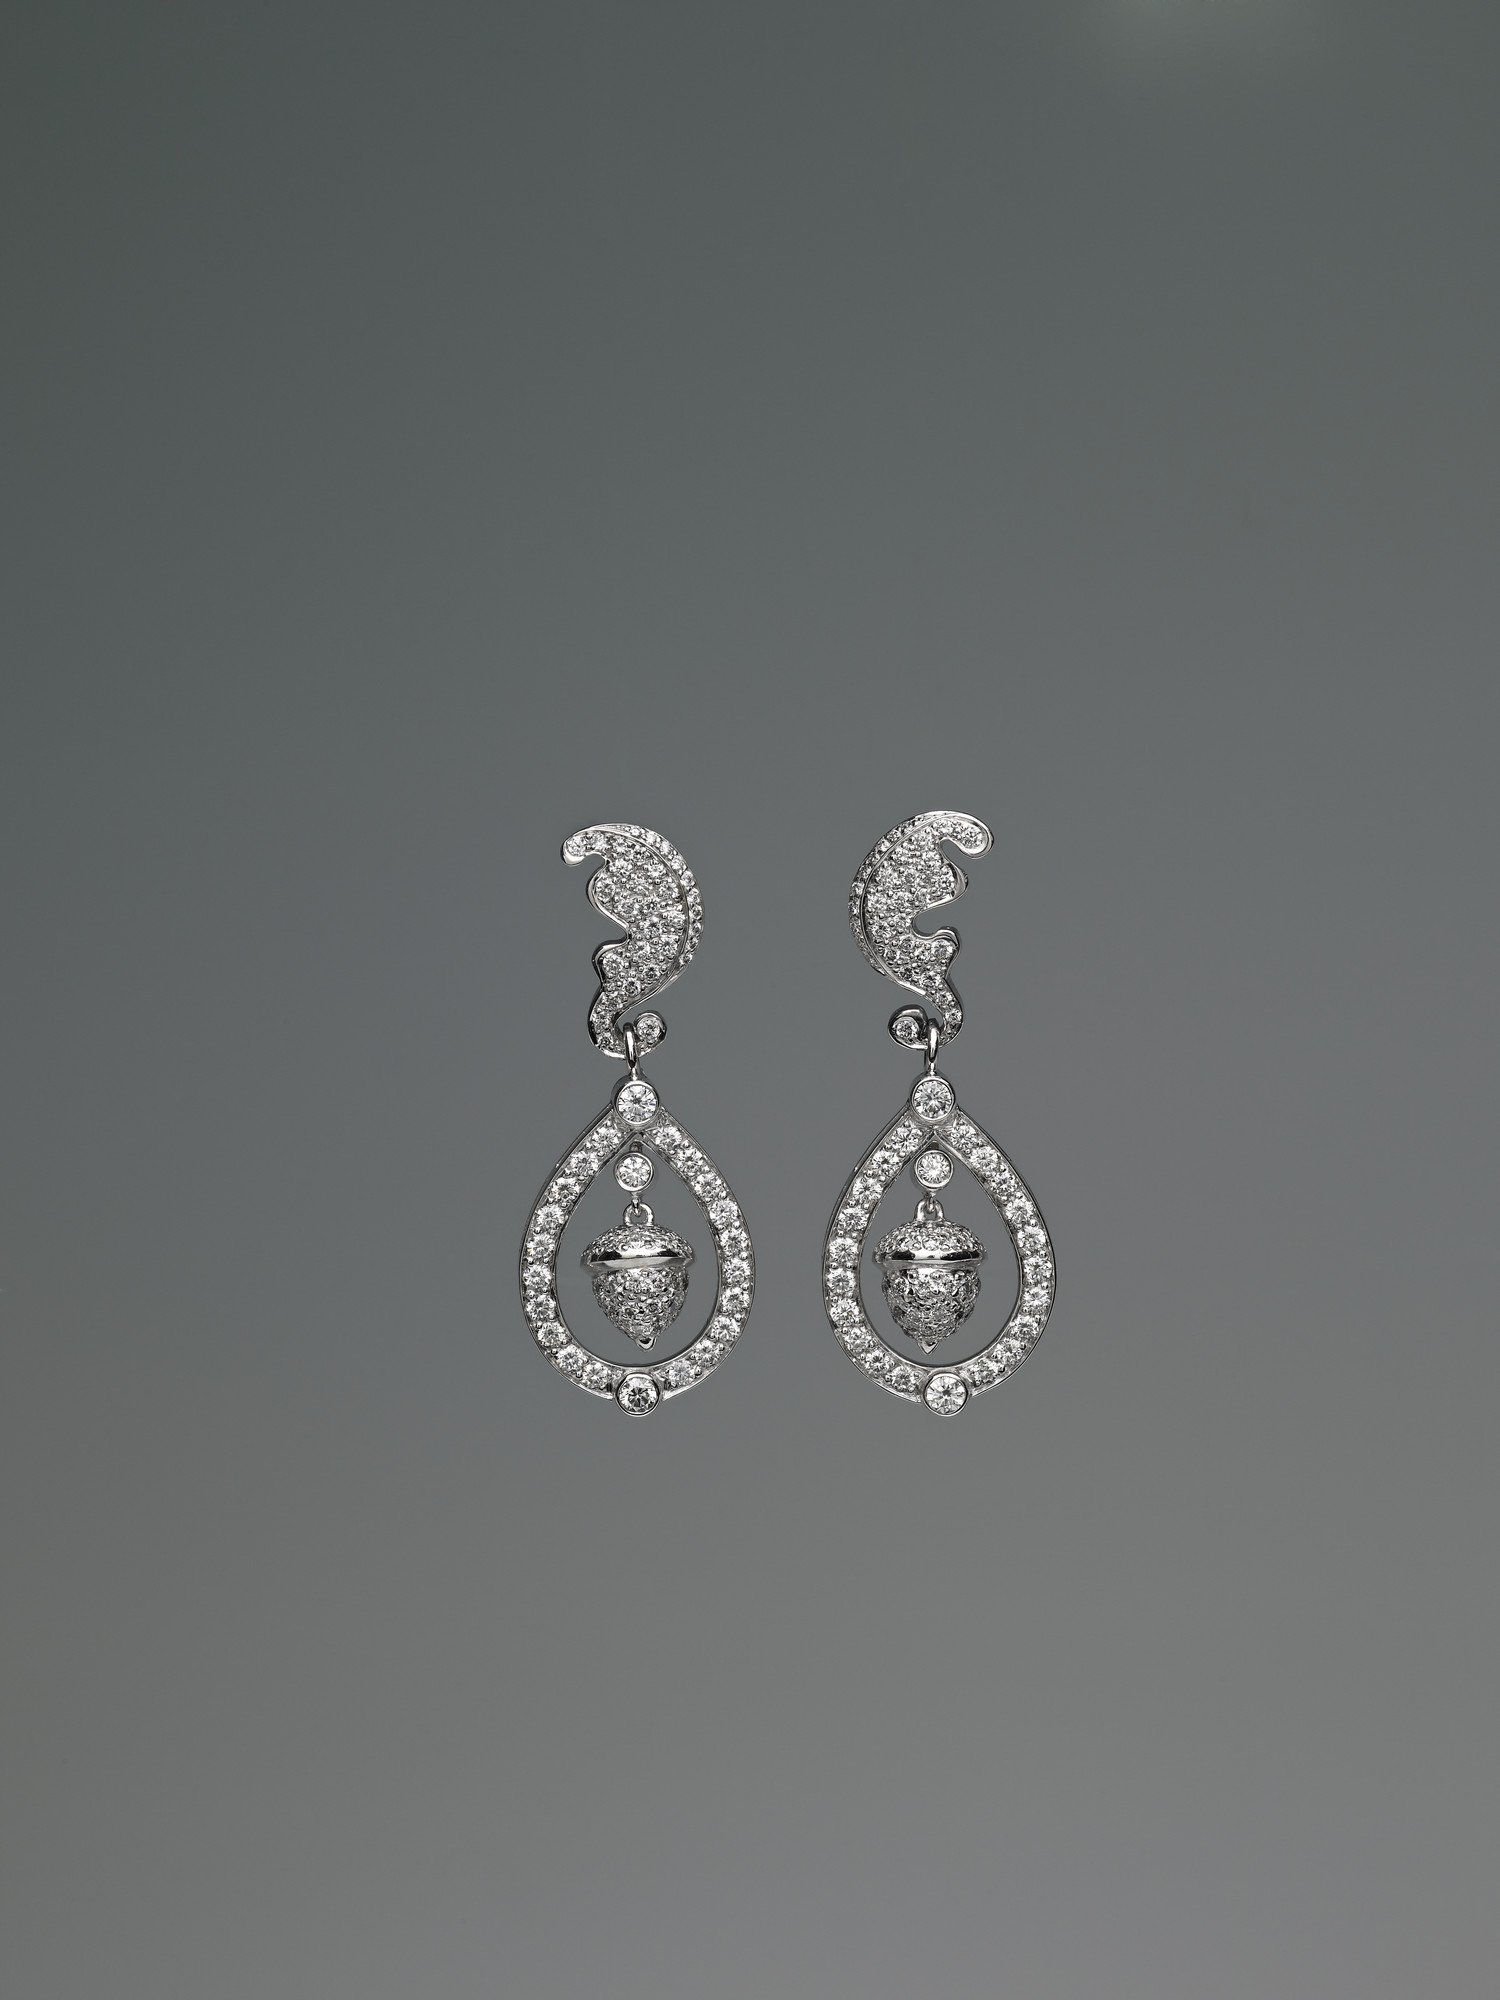 Duchess of Cambridge's Wedding Earrings by Robinson Pelham